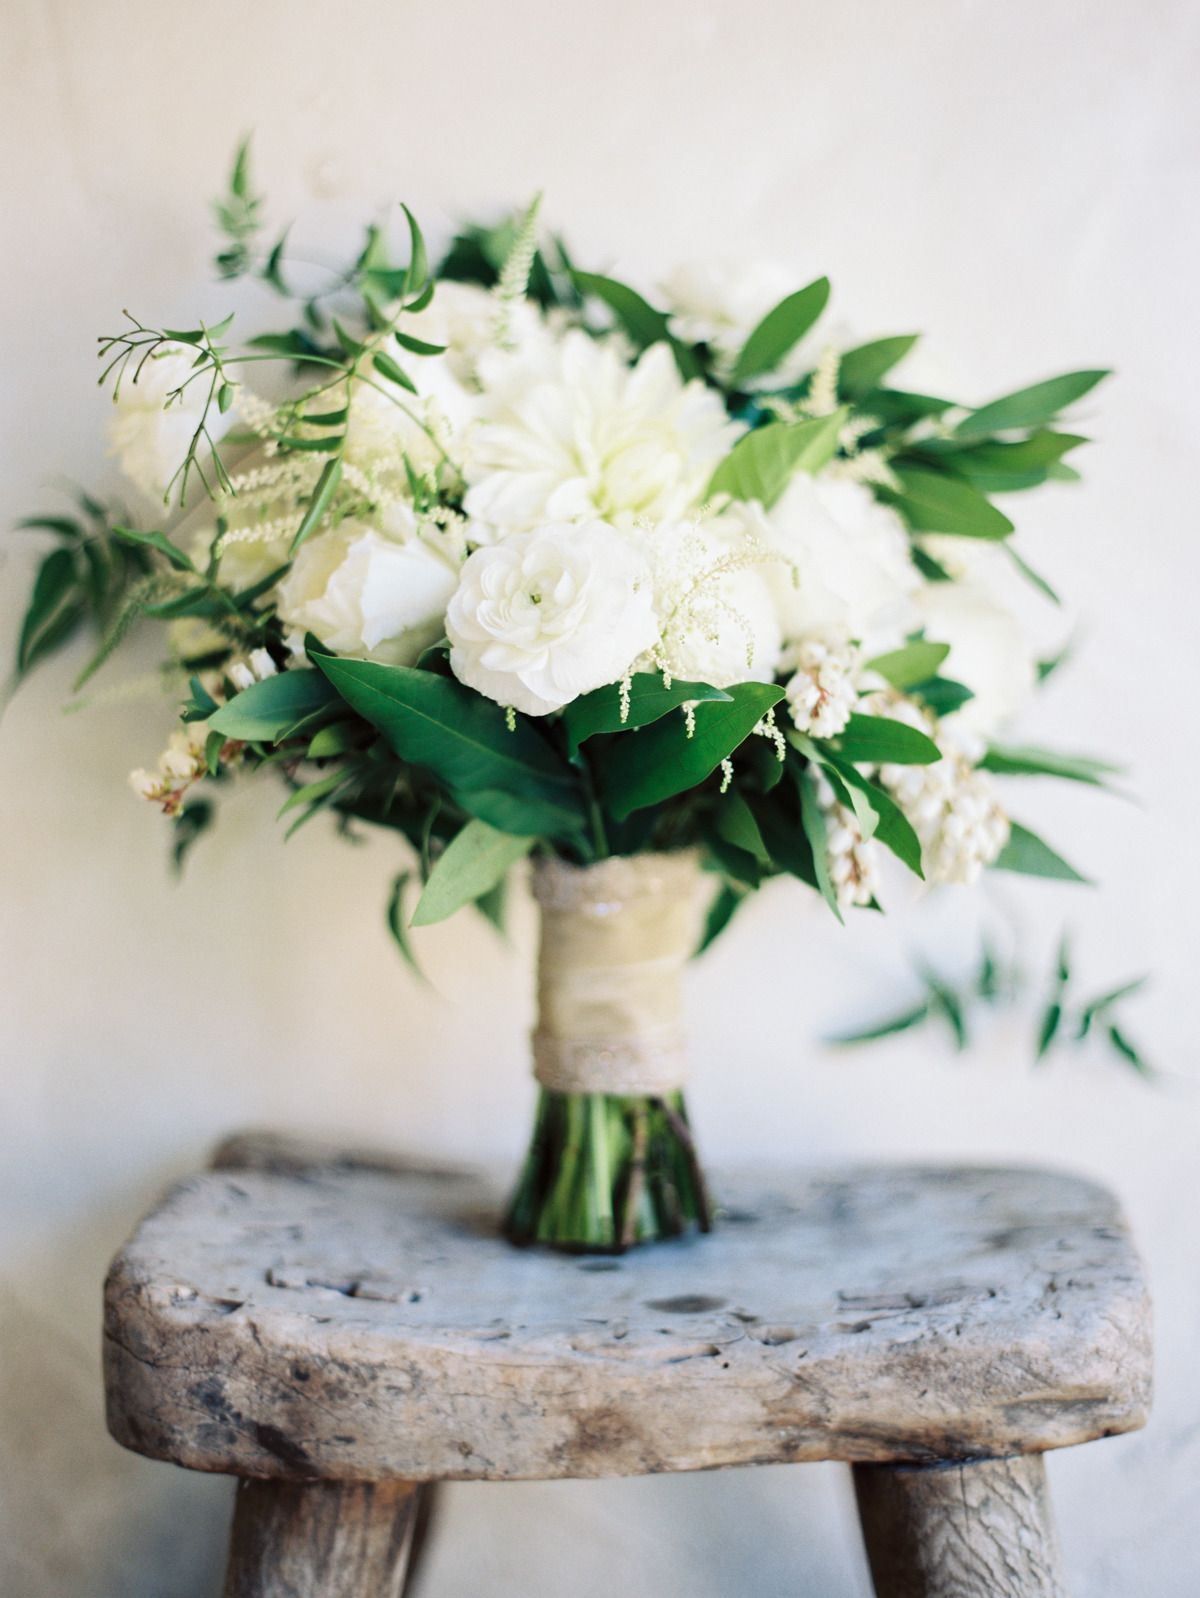 Elegant fall san ysidro wedding wedding details pinterest part of planning for a wedding is selecting appropriate decorations here are some ideas that may help in your wedding preparations izmirmasajfo